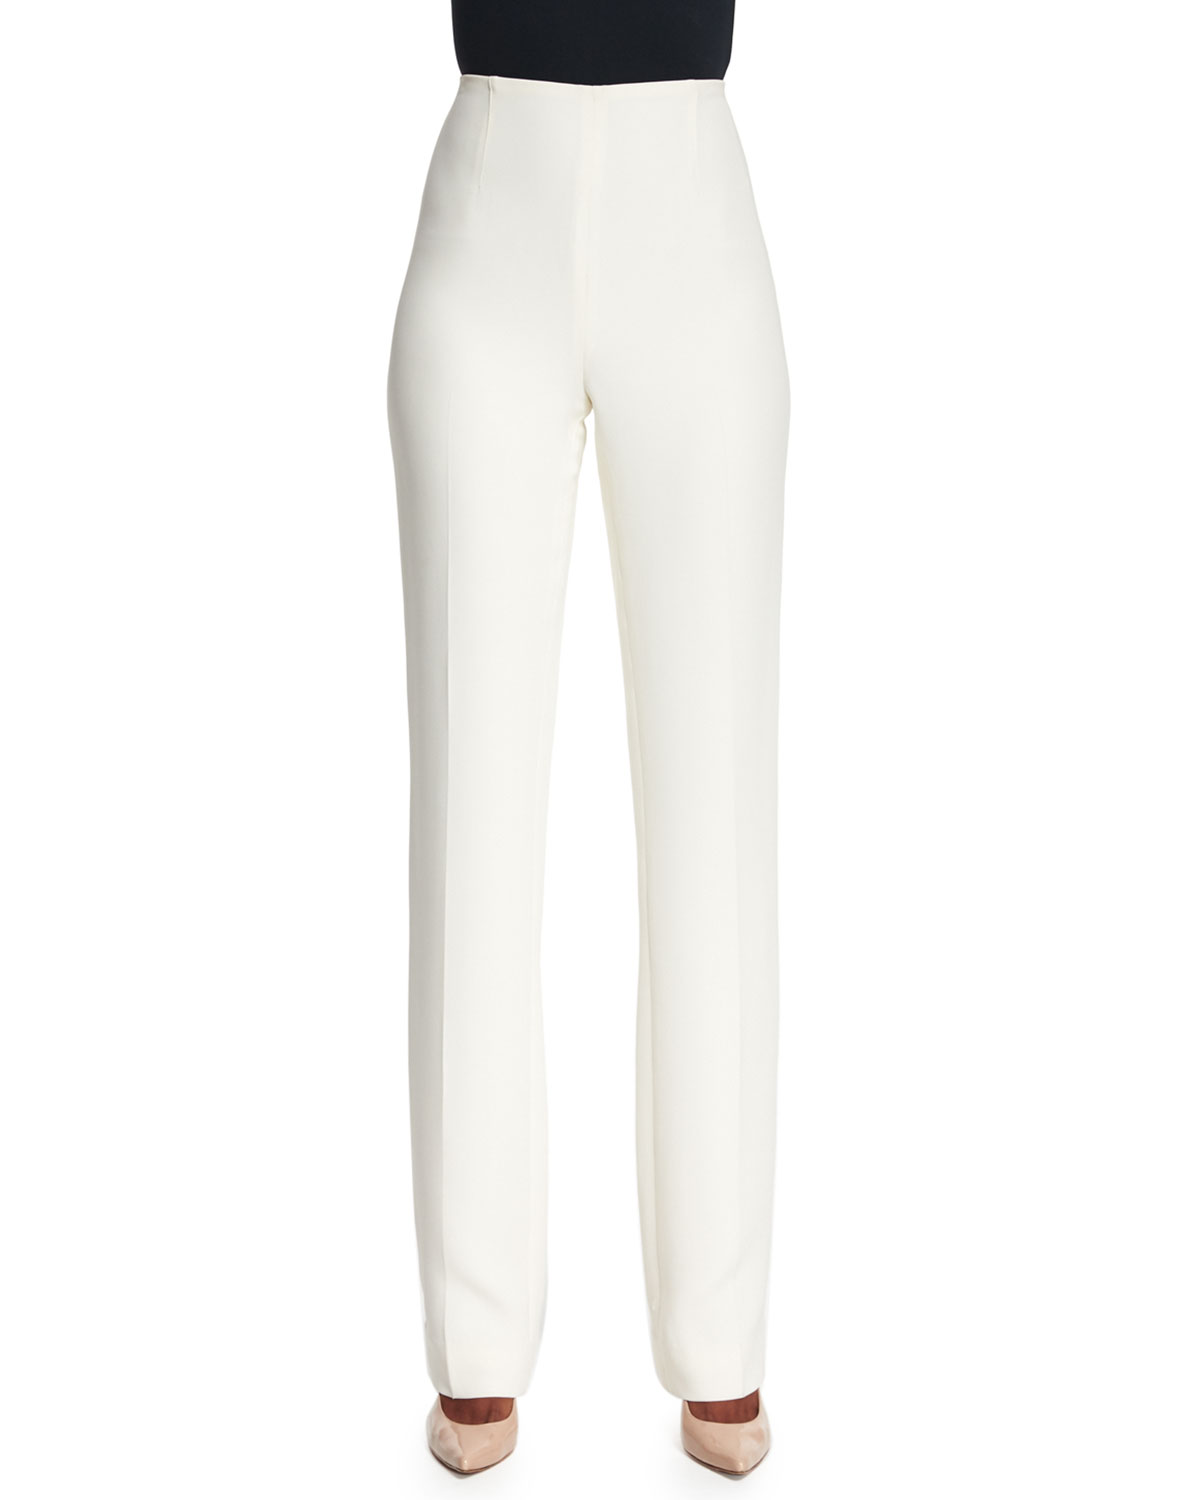 Ralph Lauren Collection Alandra Straight-Leg Pants, Cream